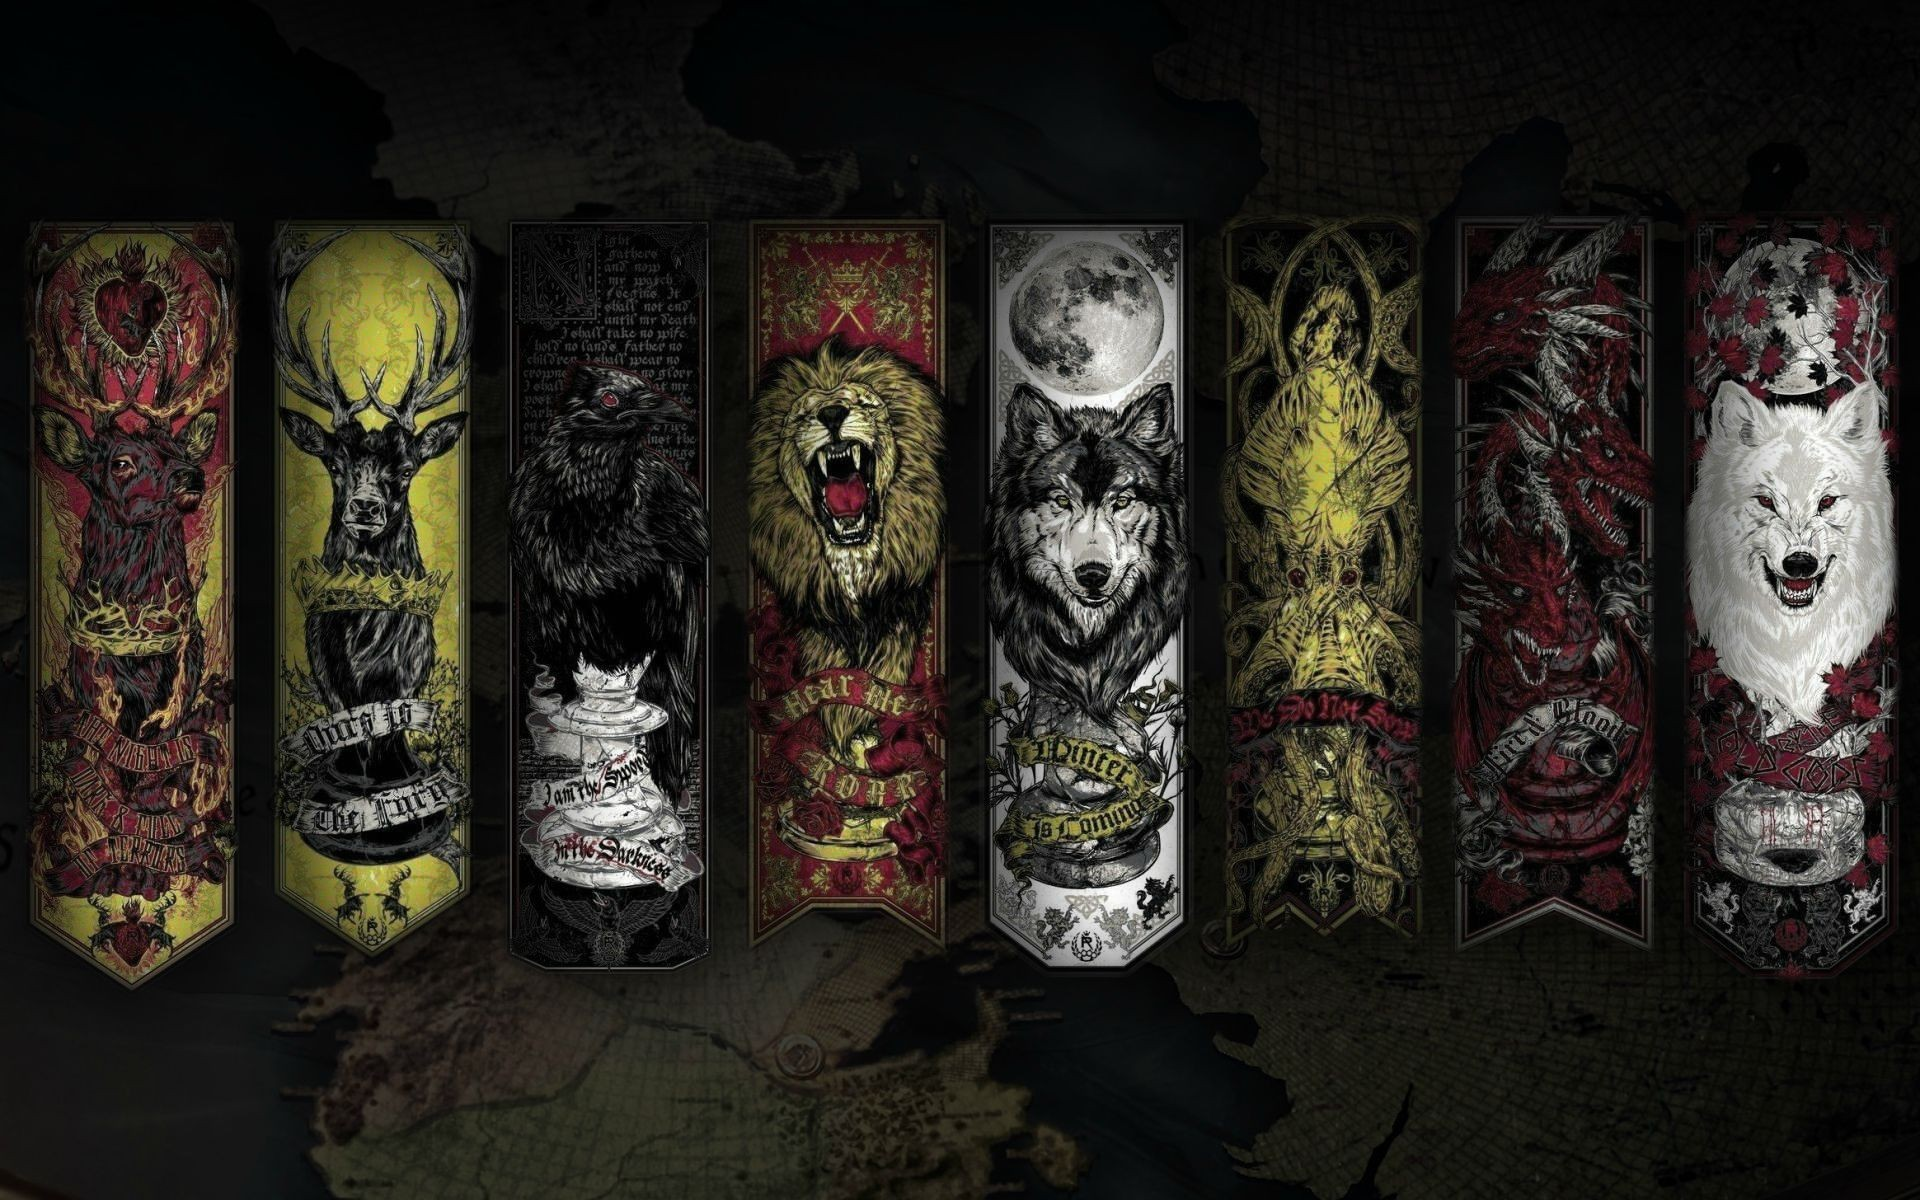 Game of Thrones HD Wallpaper Sigils Game Of Thrones Wallpapers 1920x1200